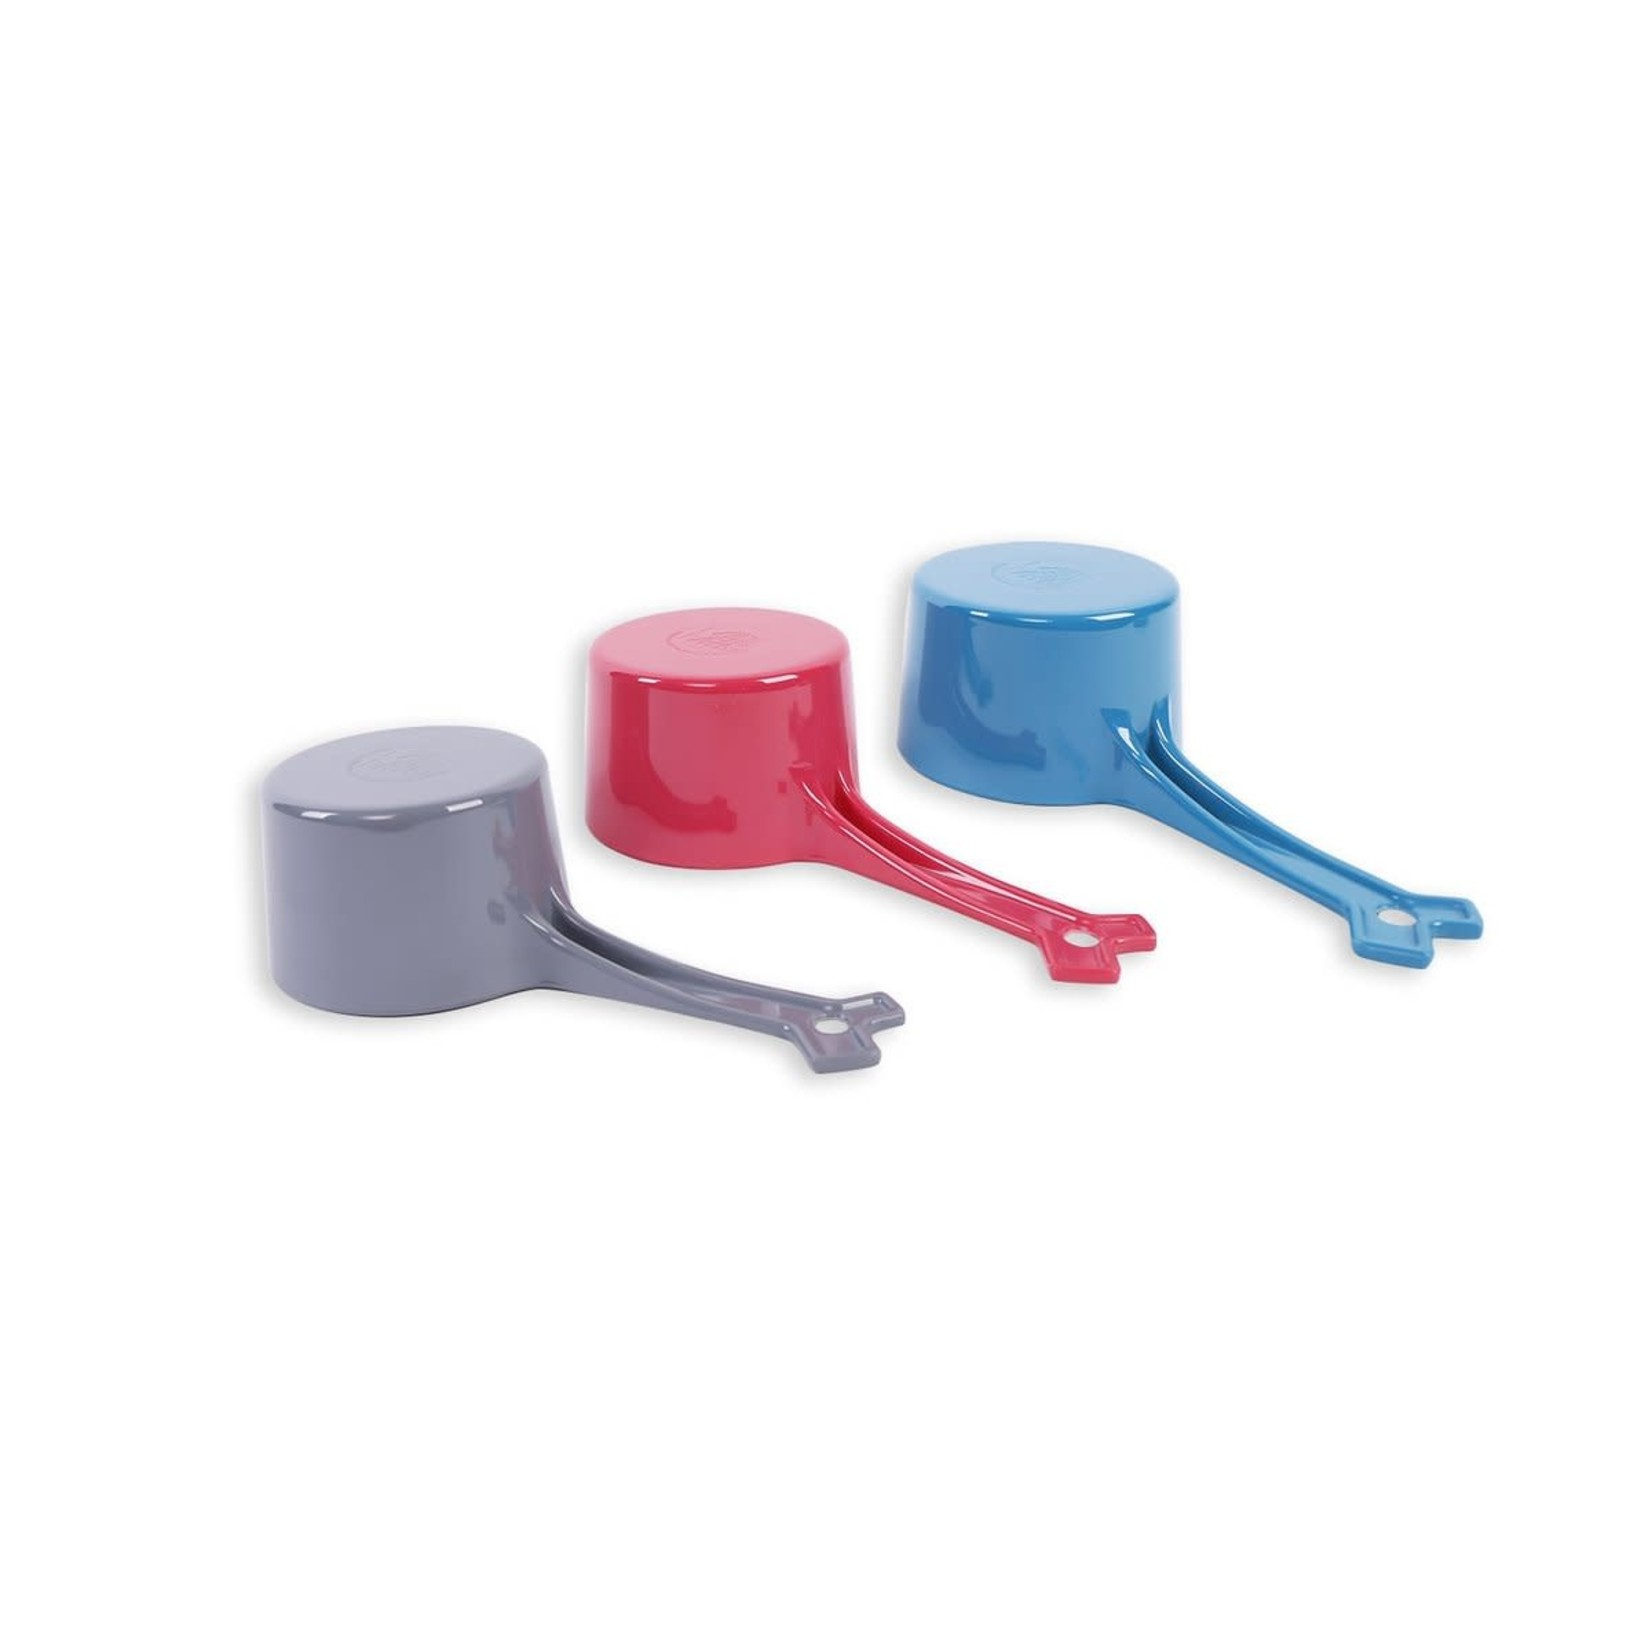 Messy Mutts Messy Mutts Food Scoop 1 CUP Blue